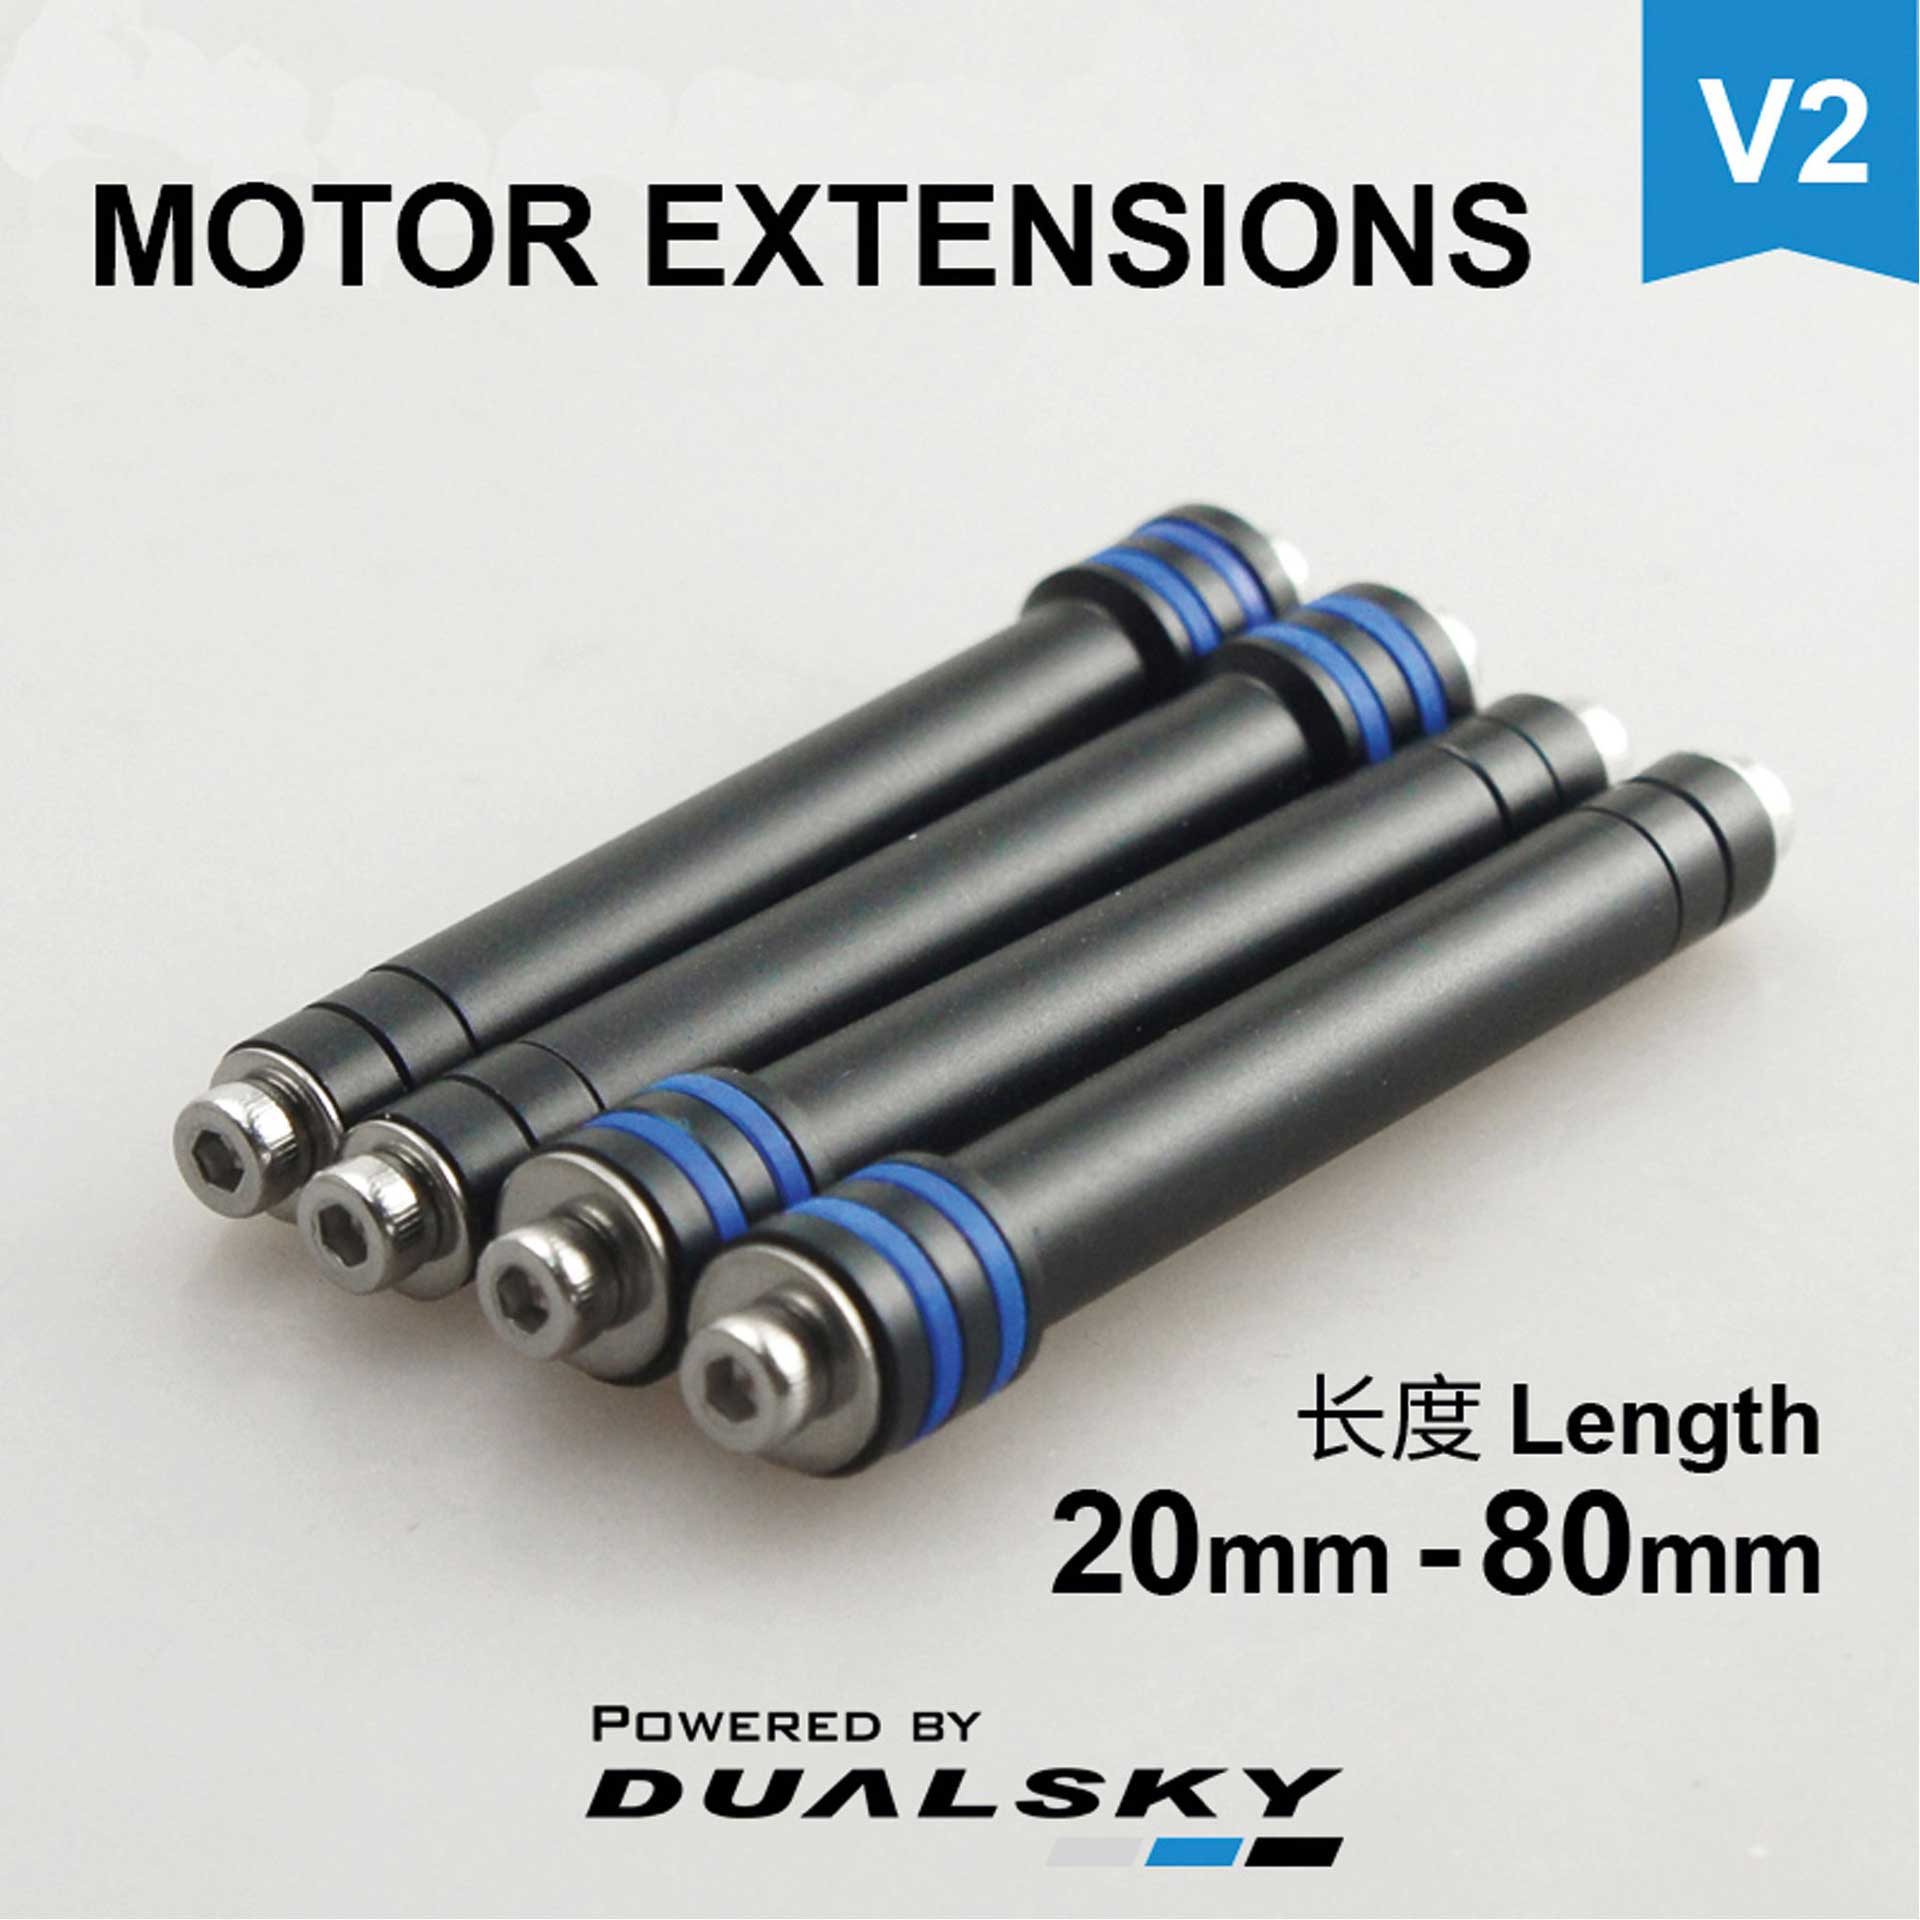 DUALSKY MOTOR EXTENSIONS V4 ME3-60 LENGTH 40 TO 60MM ADJUSTABLE WITH SCREWS stand off